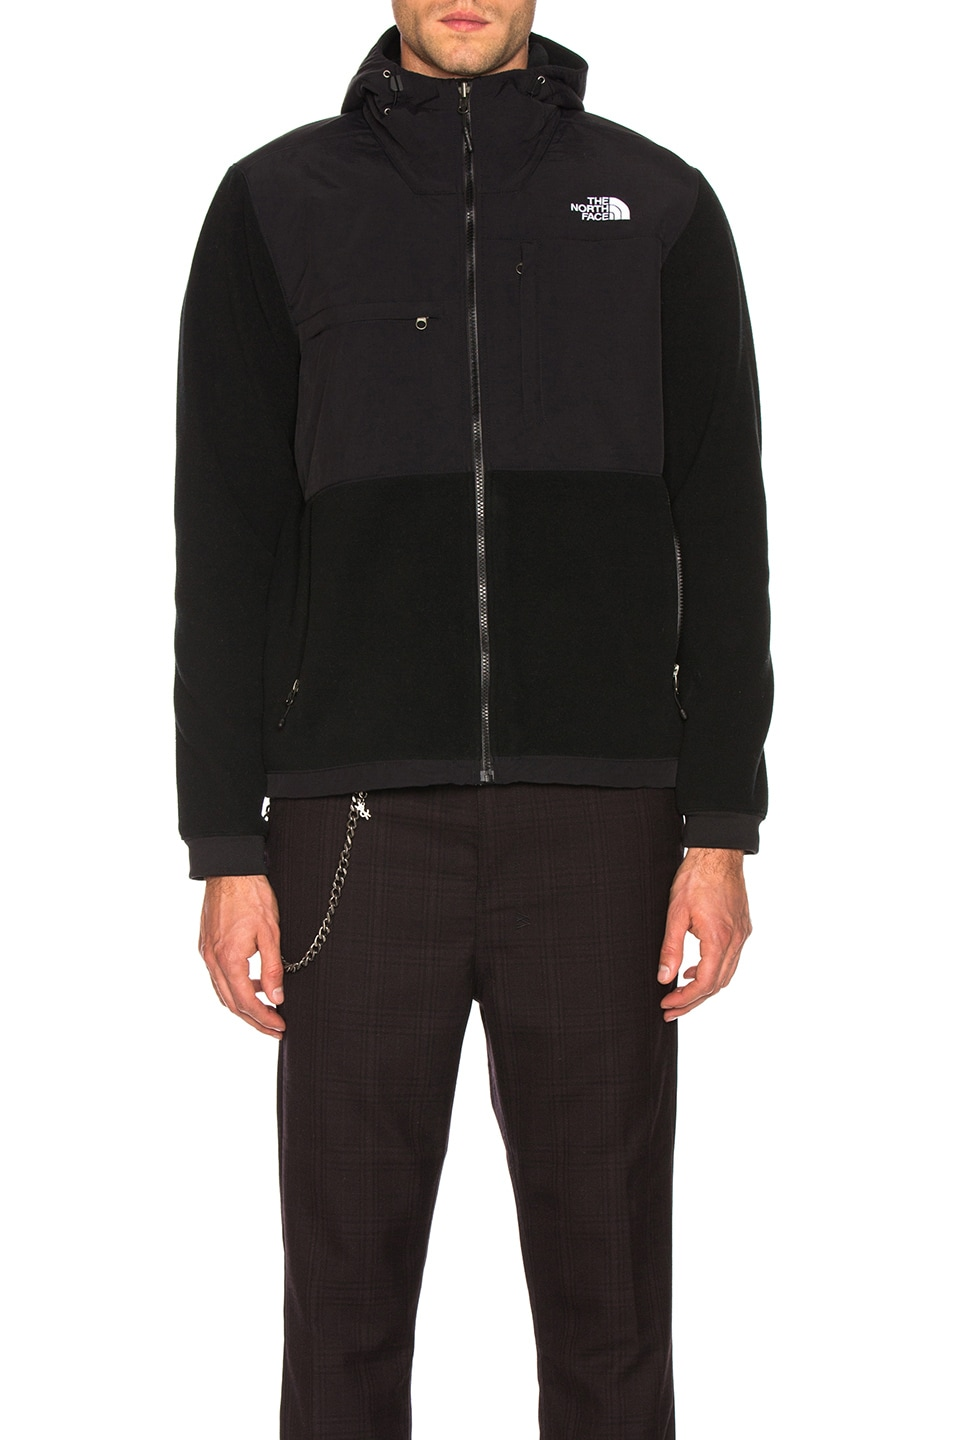 Image 2 of The North Face Denali 2 Hoodie in TNF Black